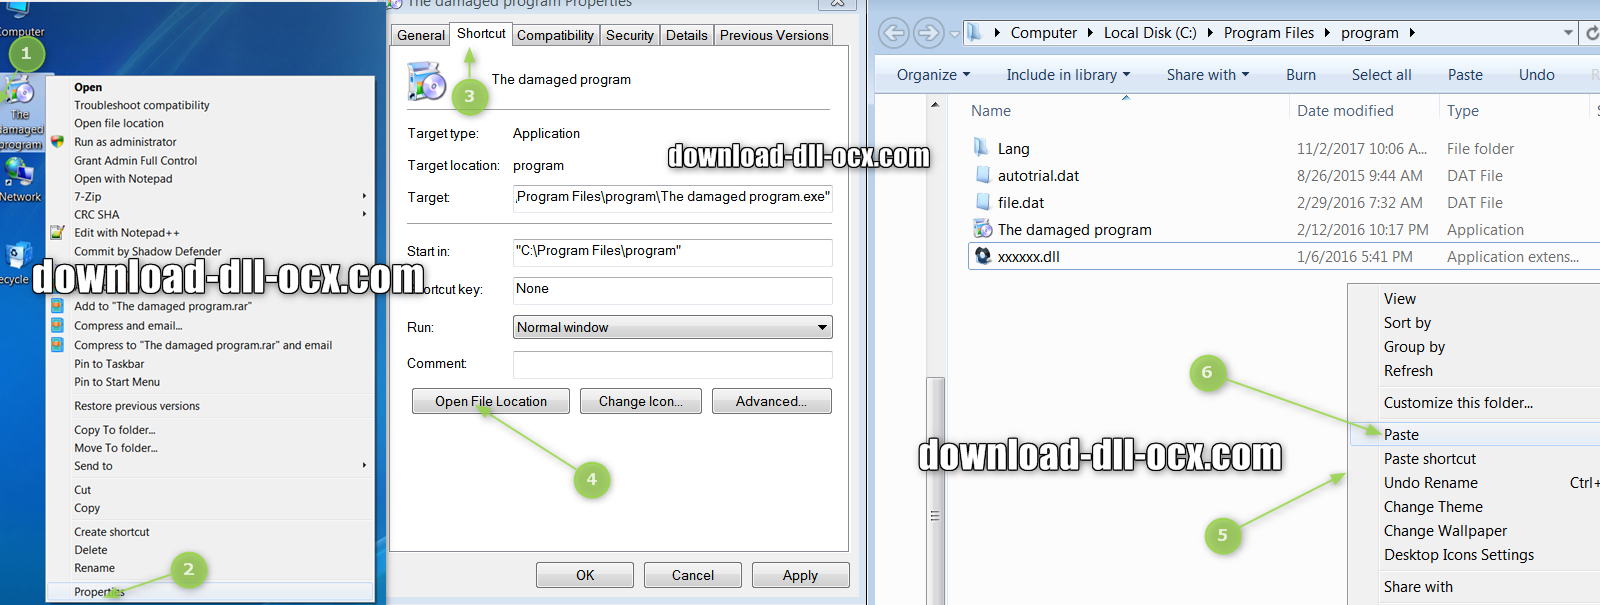 how to install Iprop.dll file? for fix missing